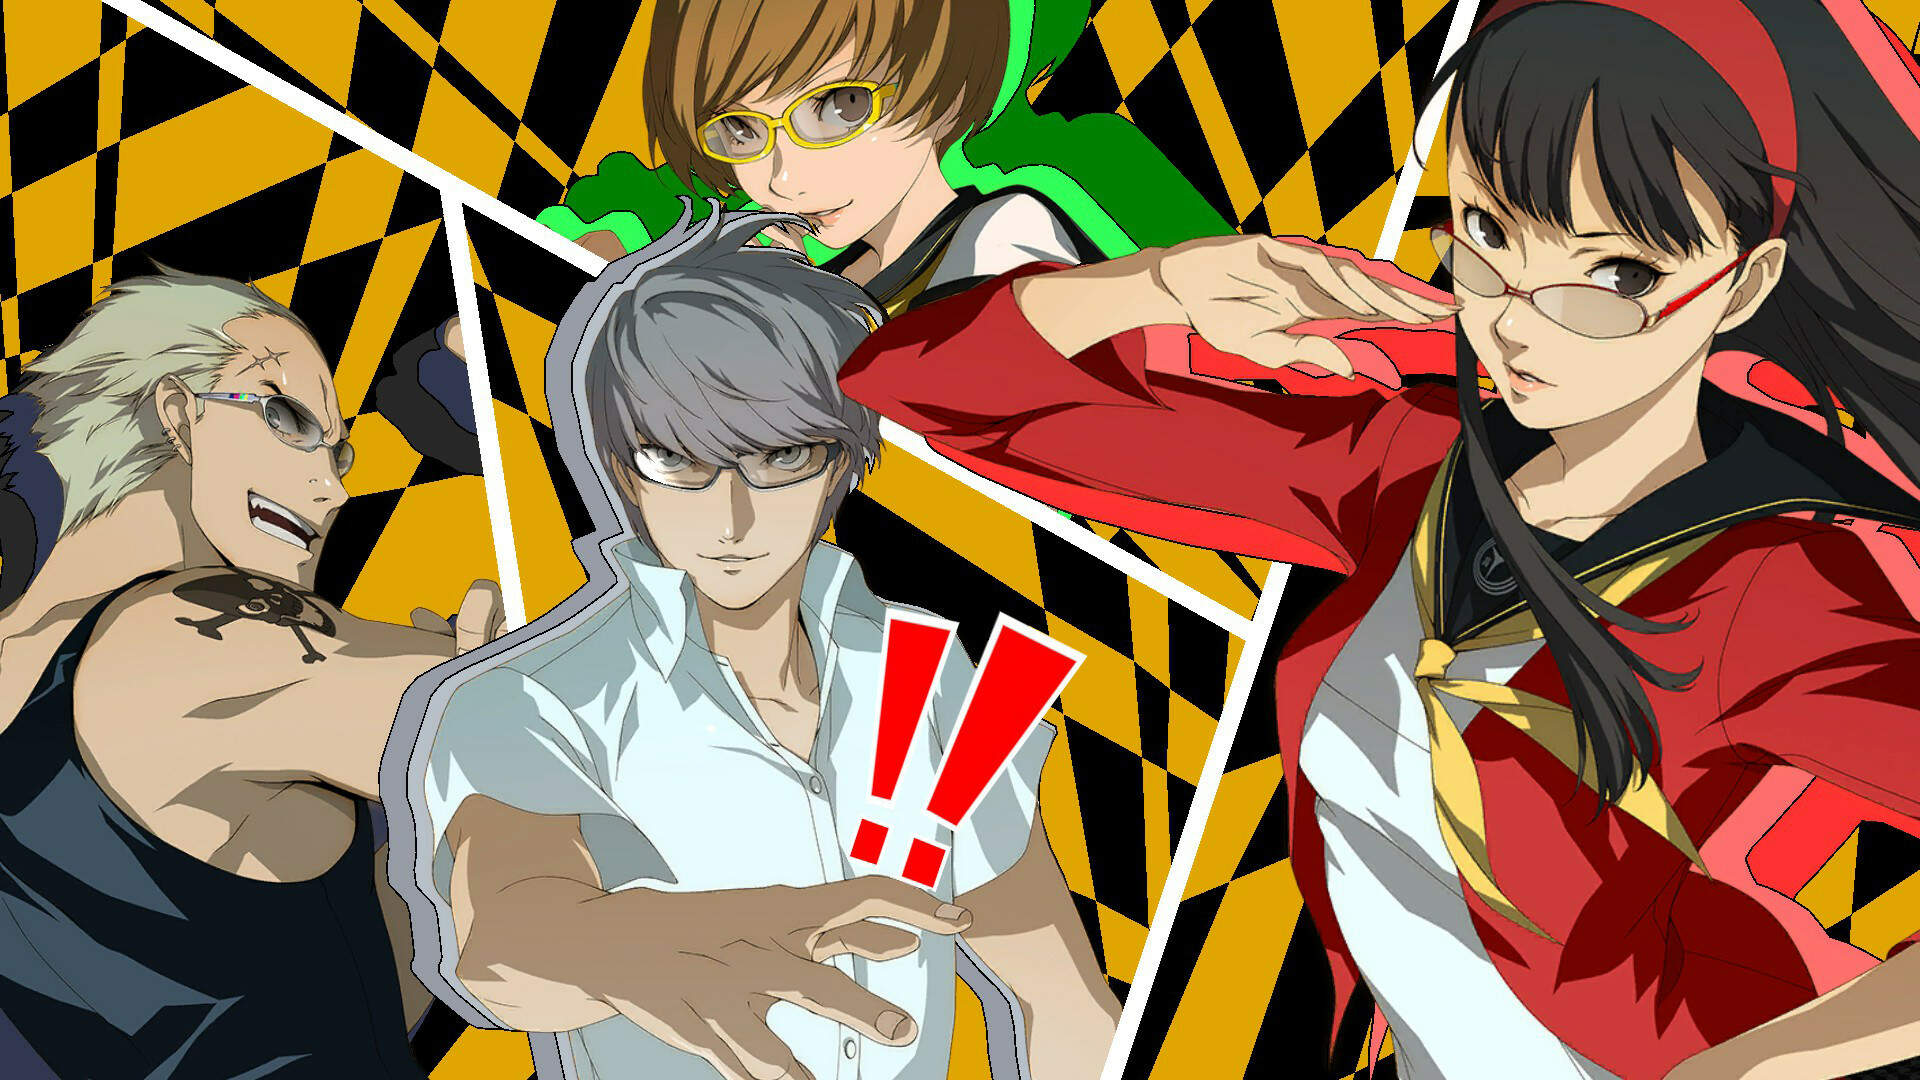 Every Day's Great With Persona 4 Golden Out Now on PC